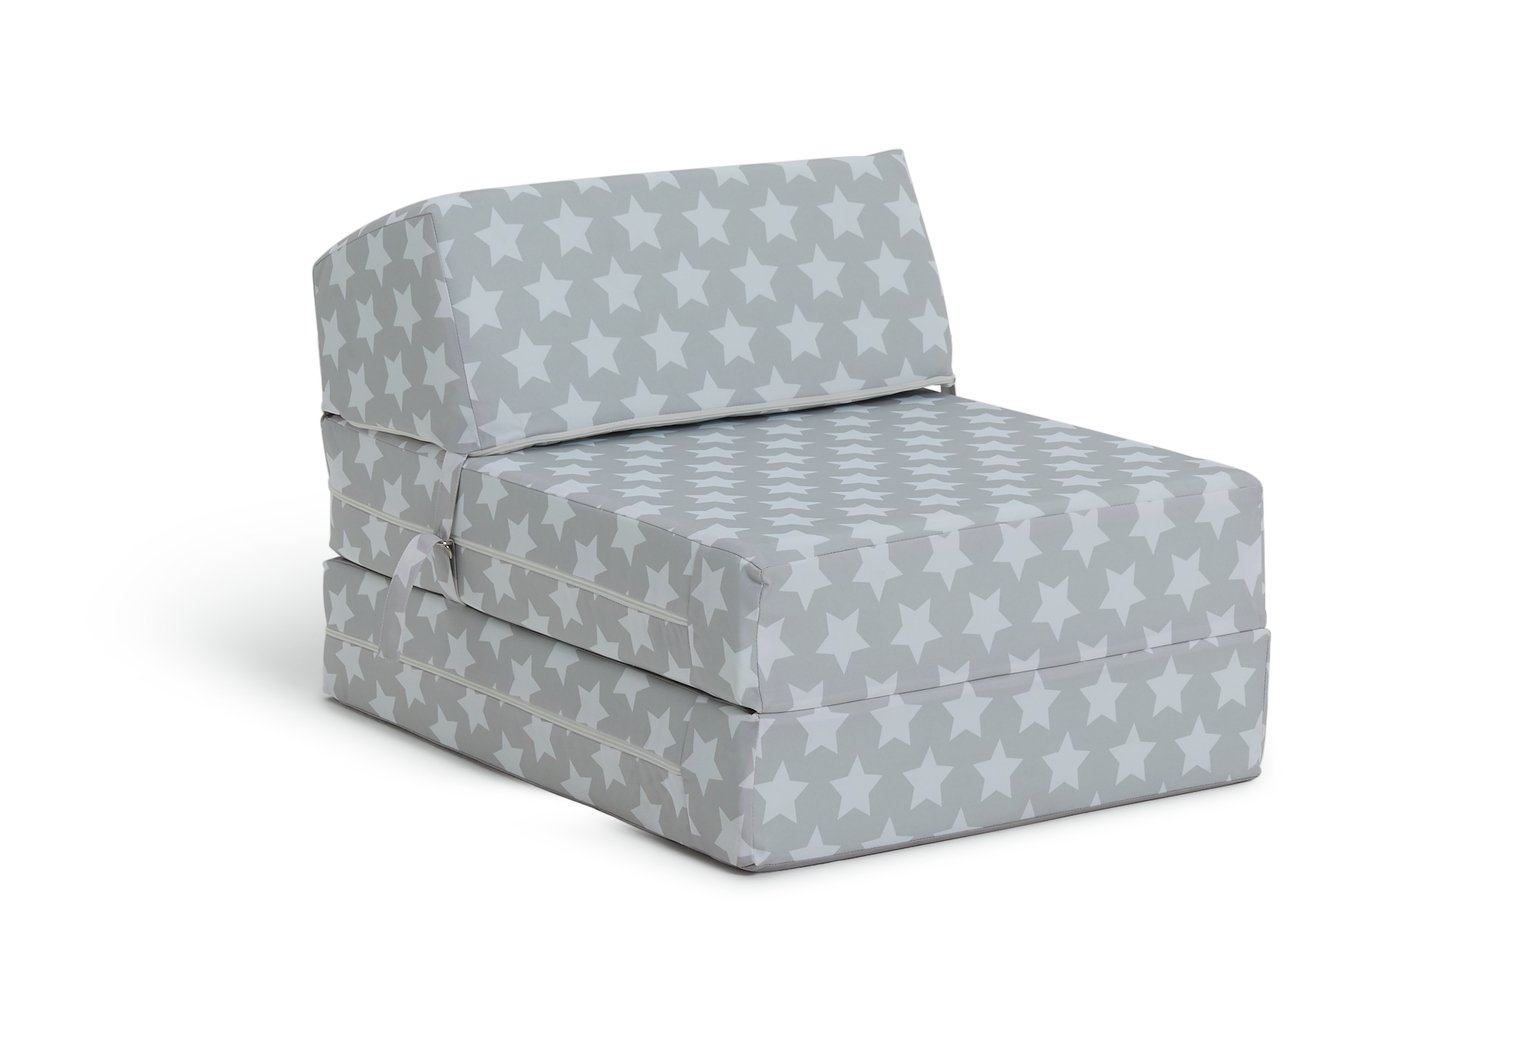 Argos Home Silver Stars Chairbed